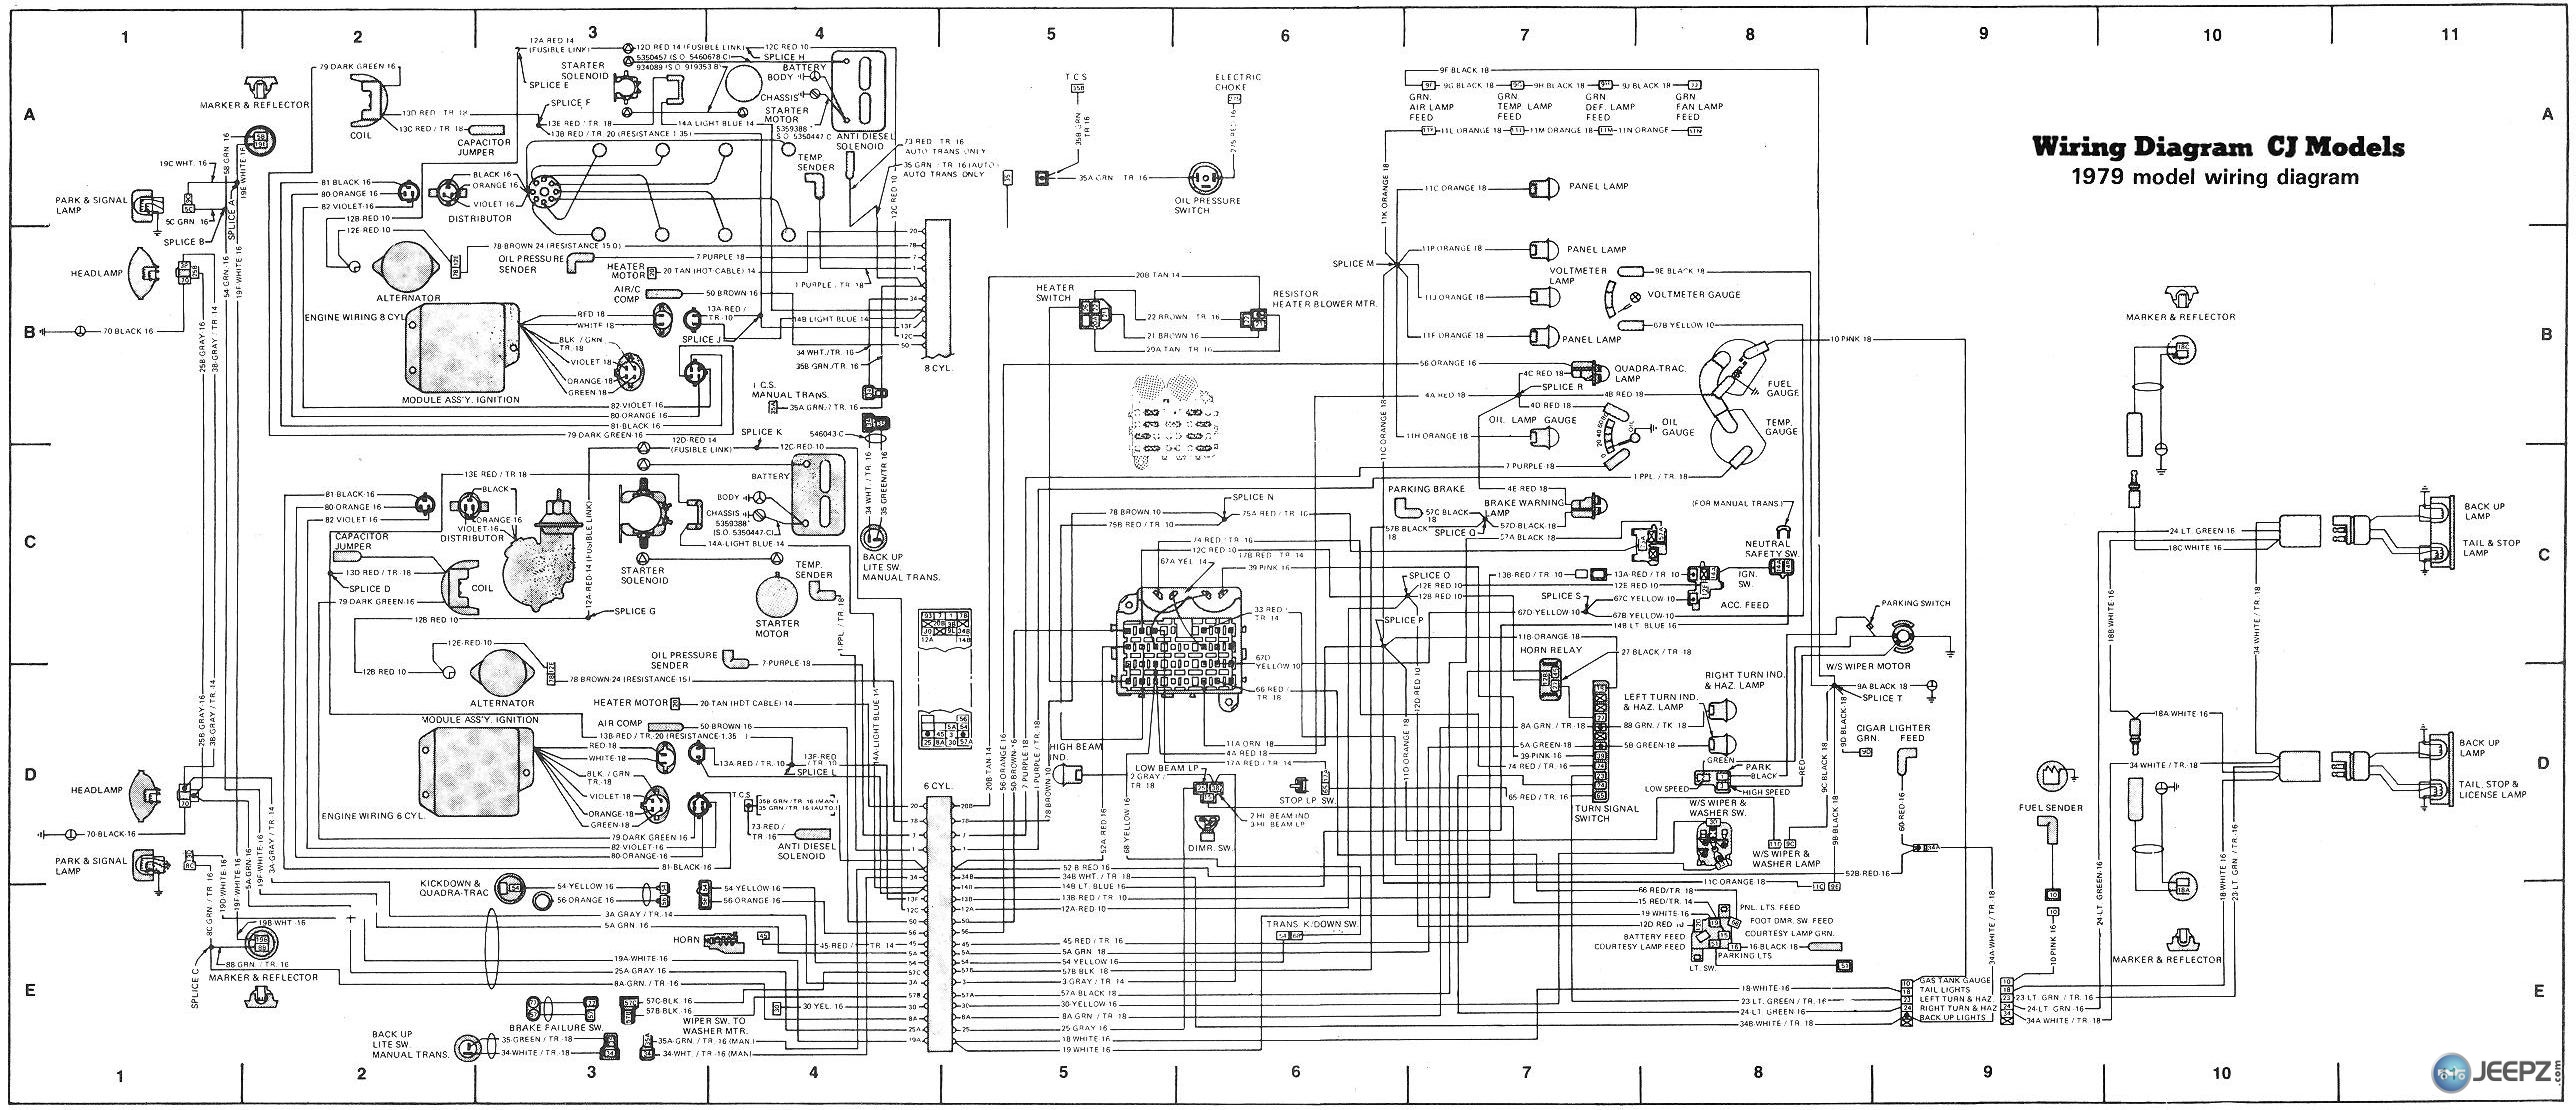 cj5 wiring schematic wiring diagram site 1973 jeep cj5 wiring diagram database wiring diagram 1981 jeep cj5 wiring diagram 1972 cj5